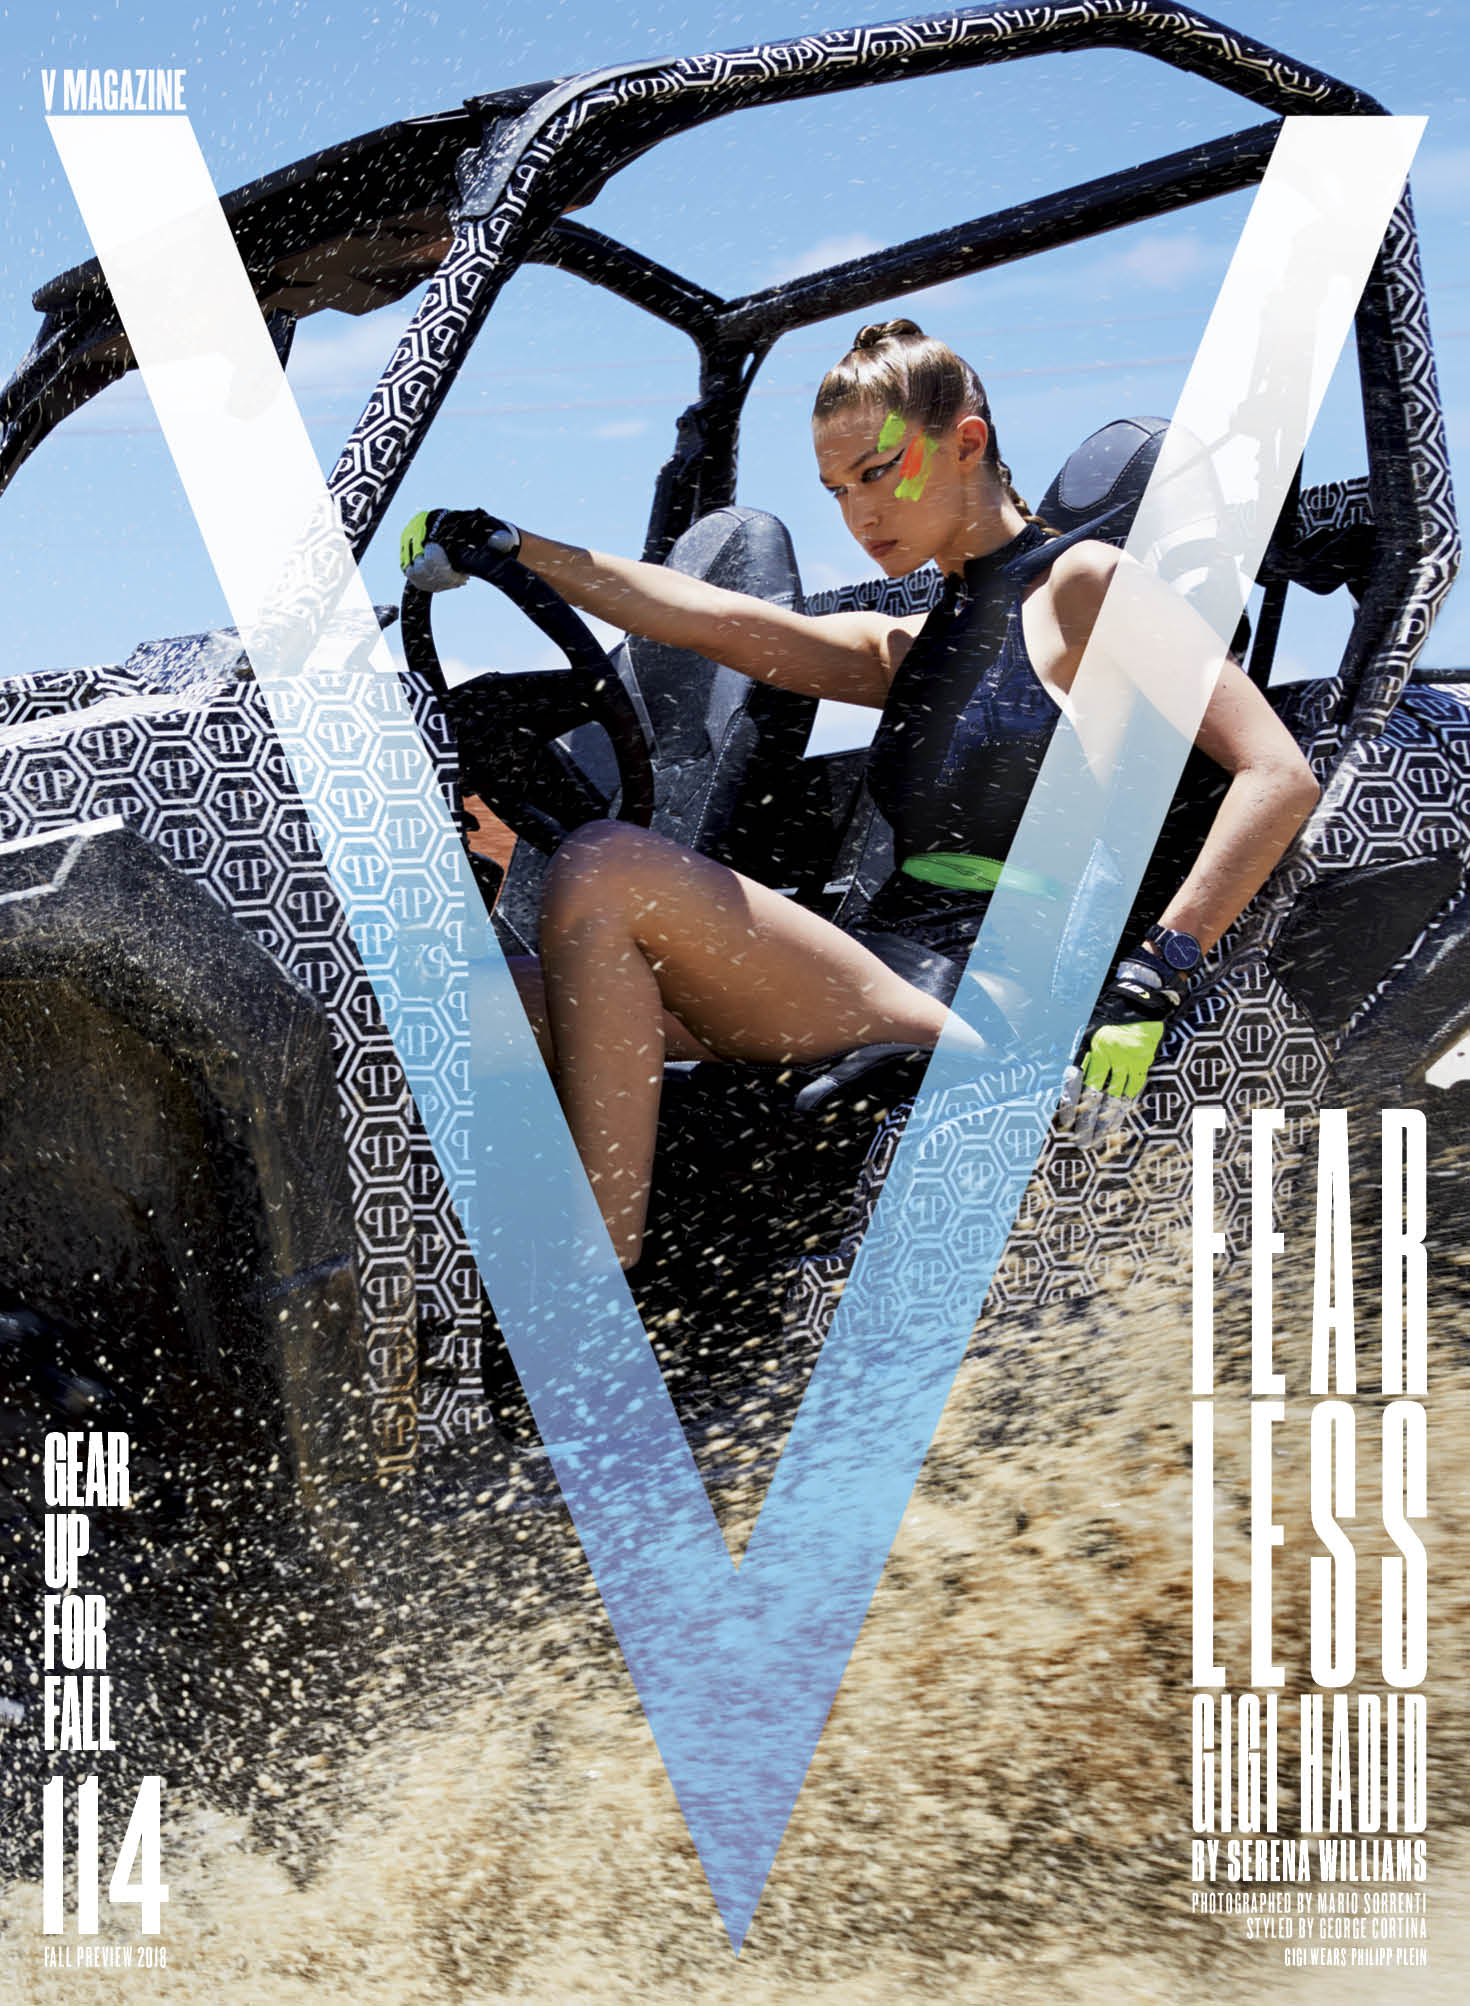 V Magazine Cover With Gigi Hadid